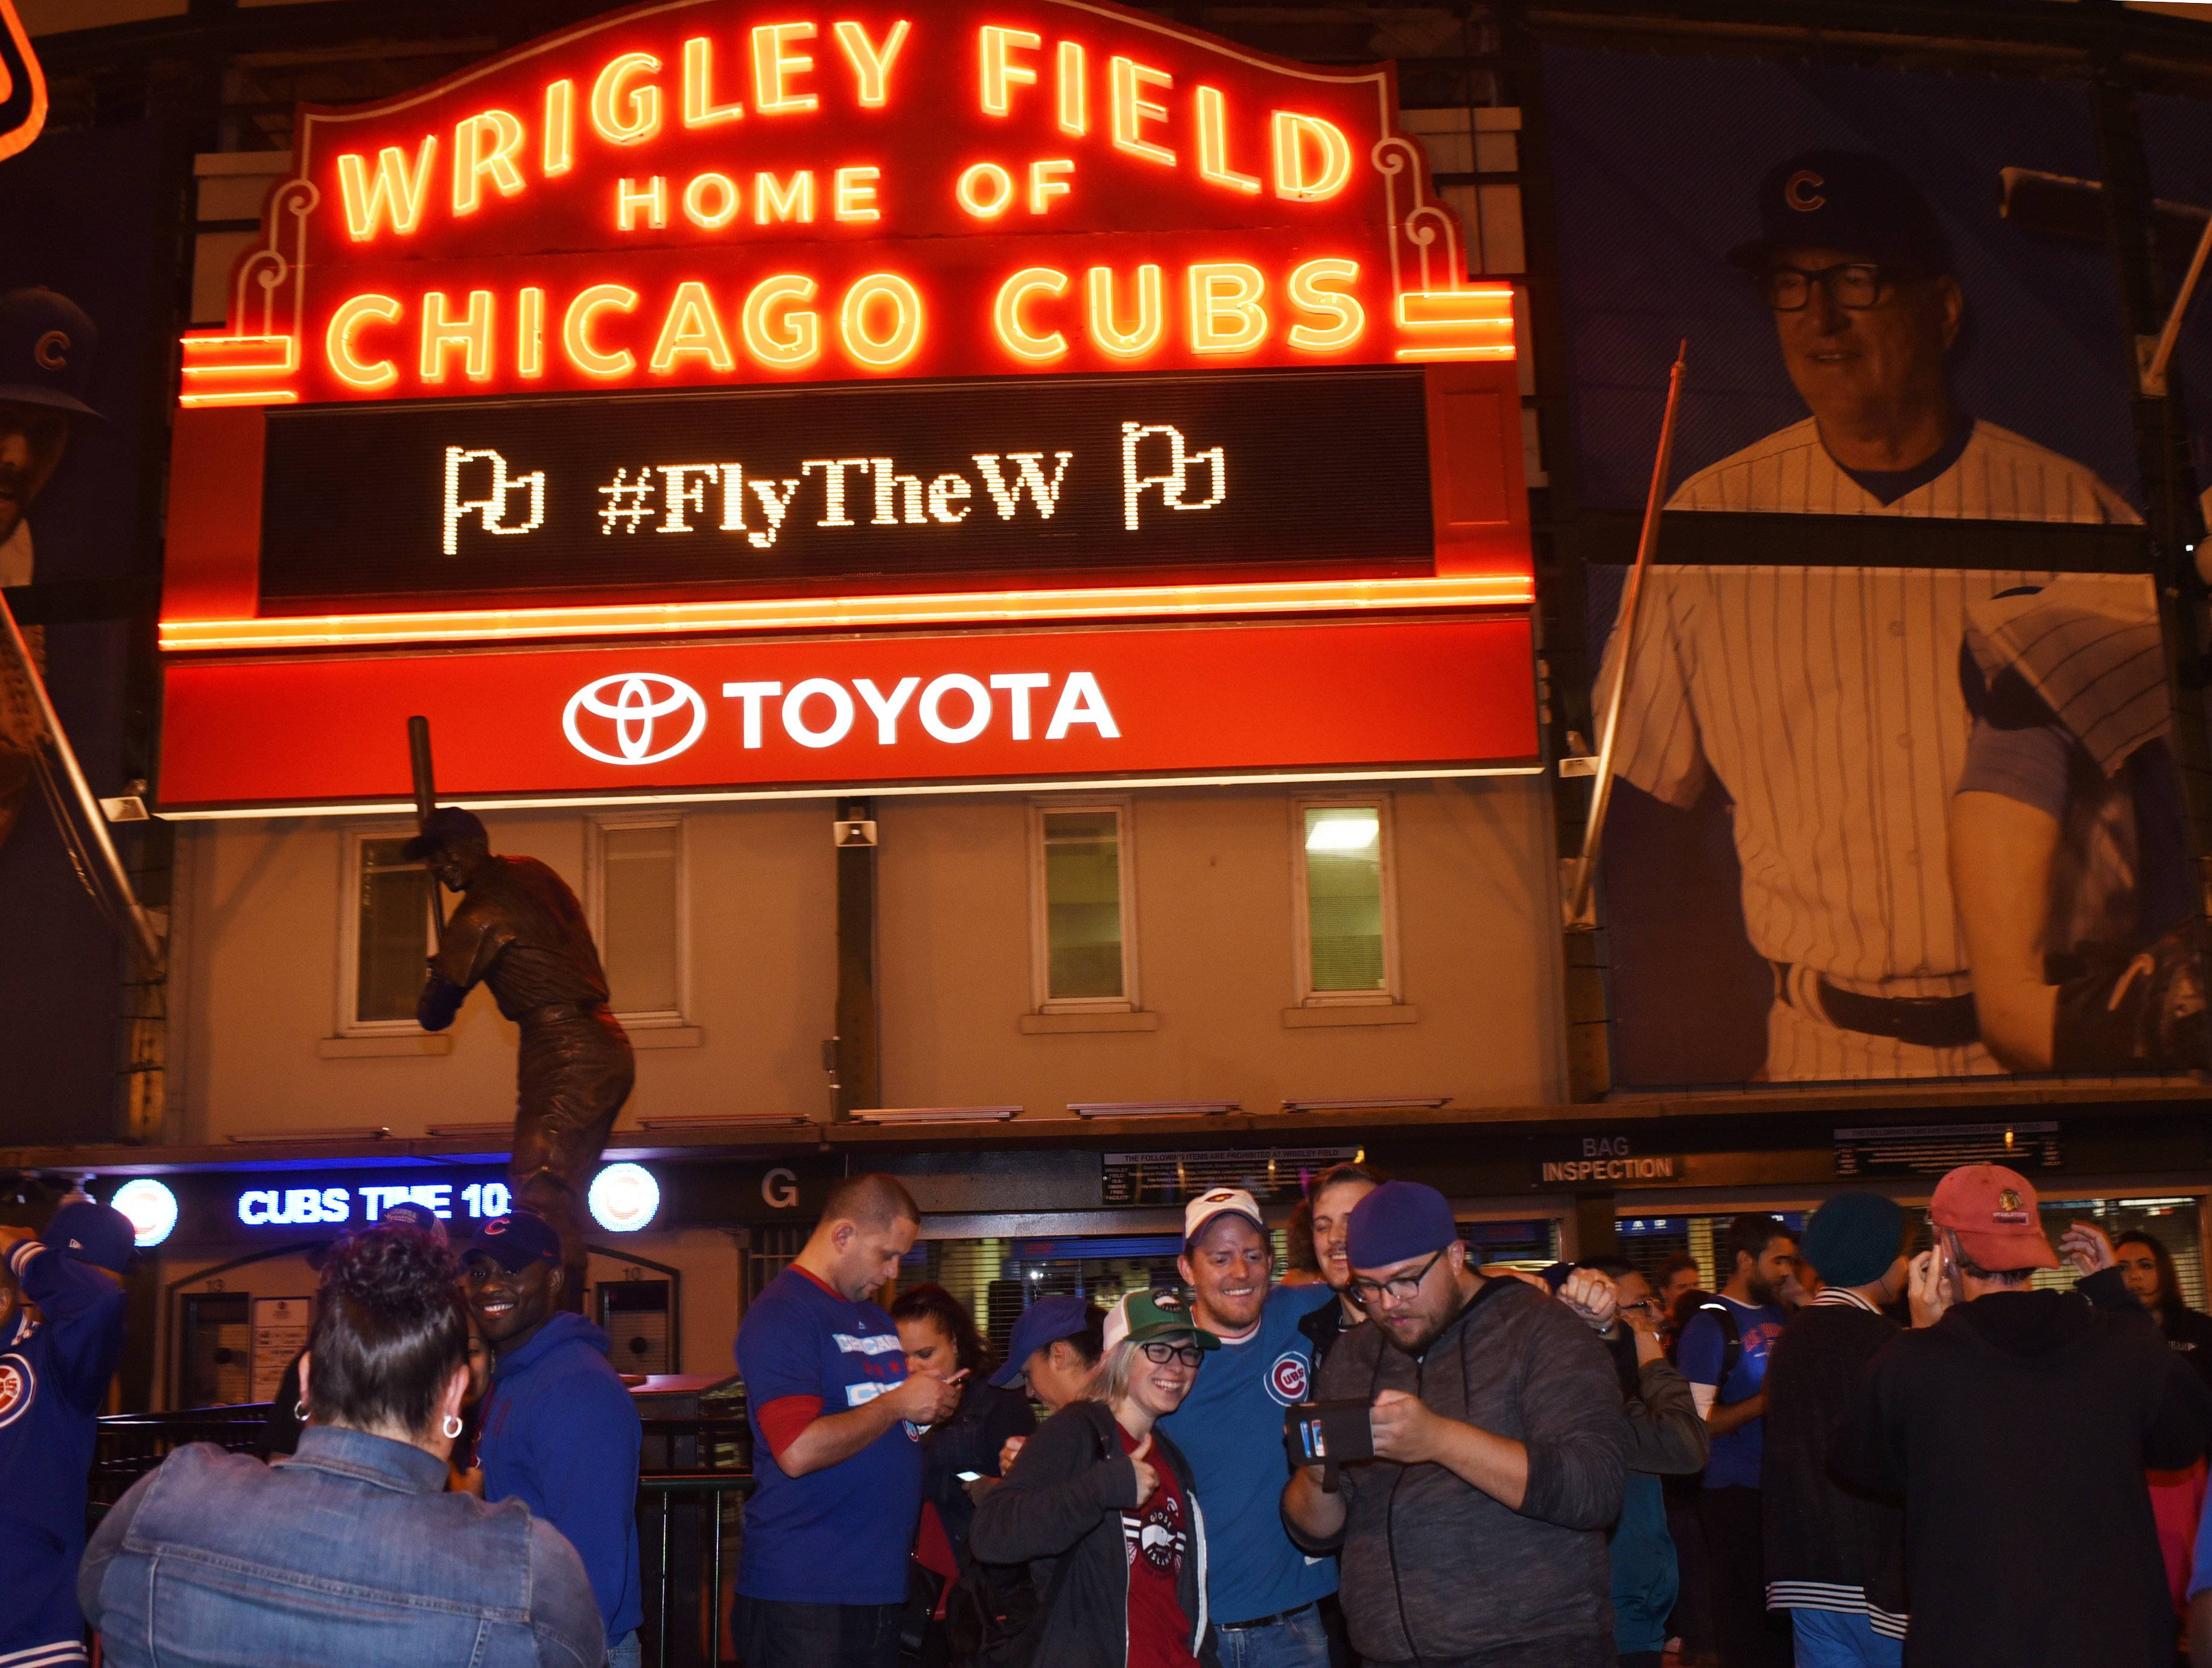 Fans celebrate outside Wrigley Field following the Cubs' defeat the Pirates in the National League Wild Card game in Pittsburgh.